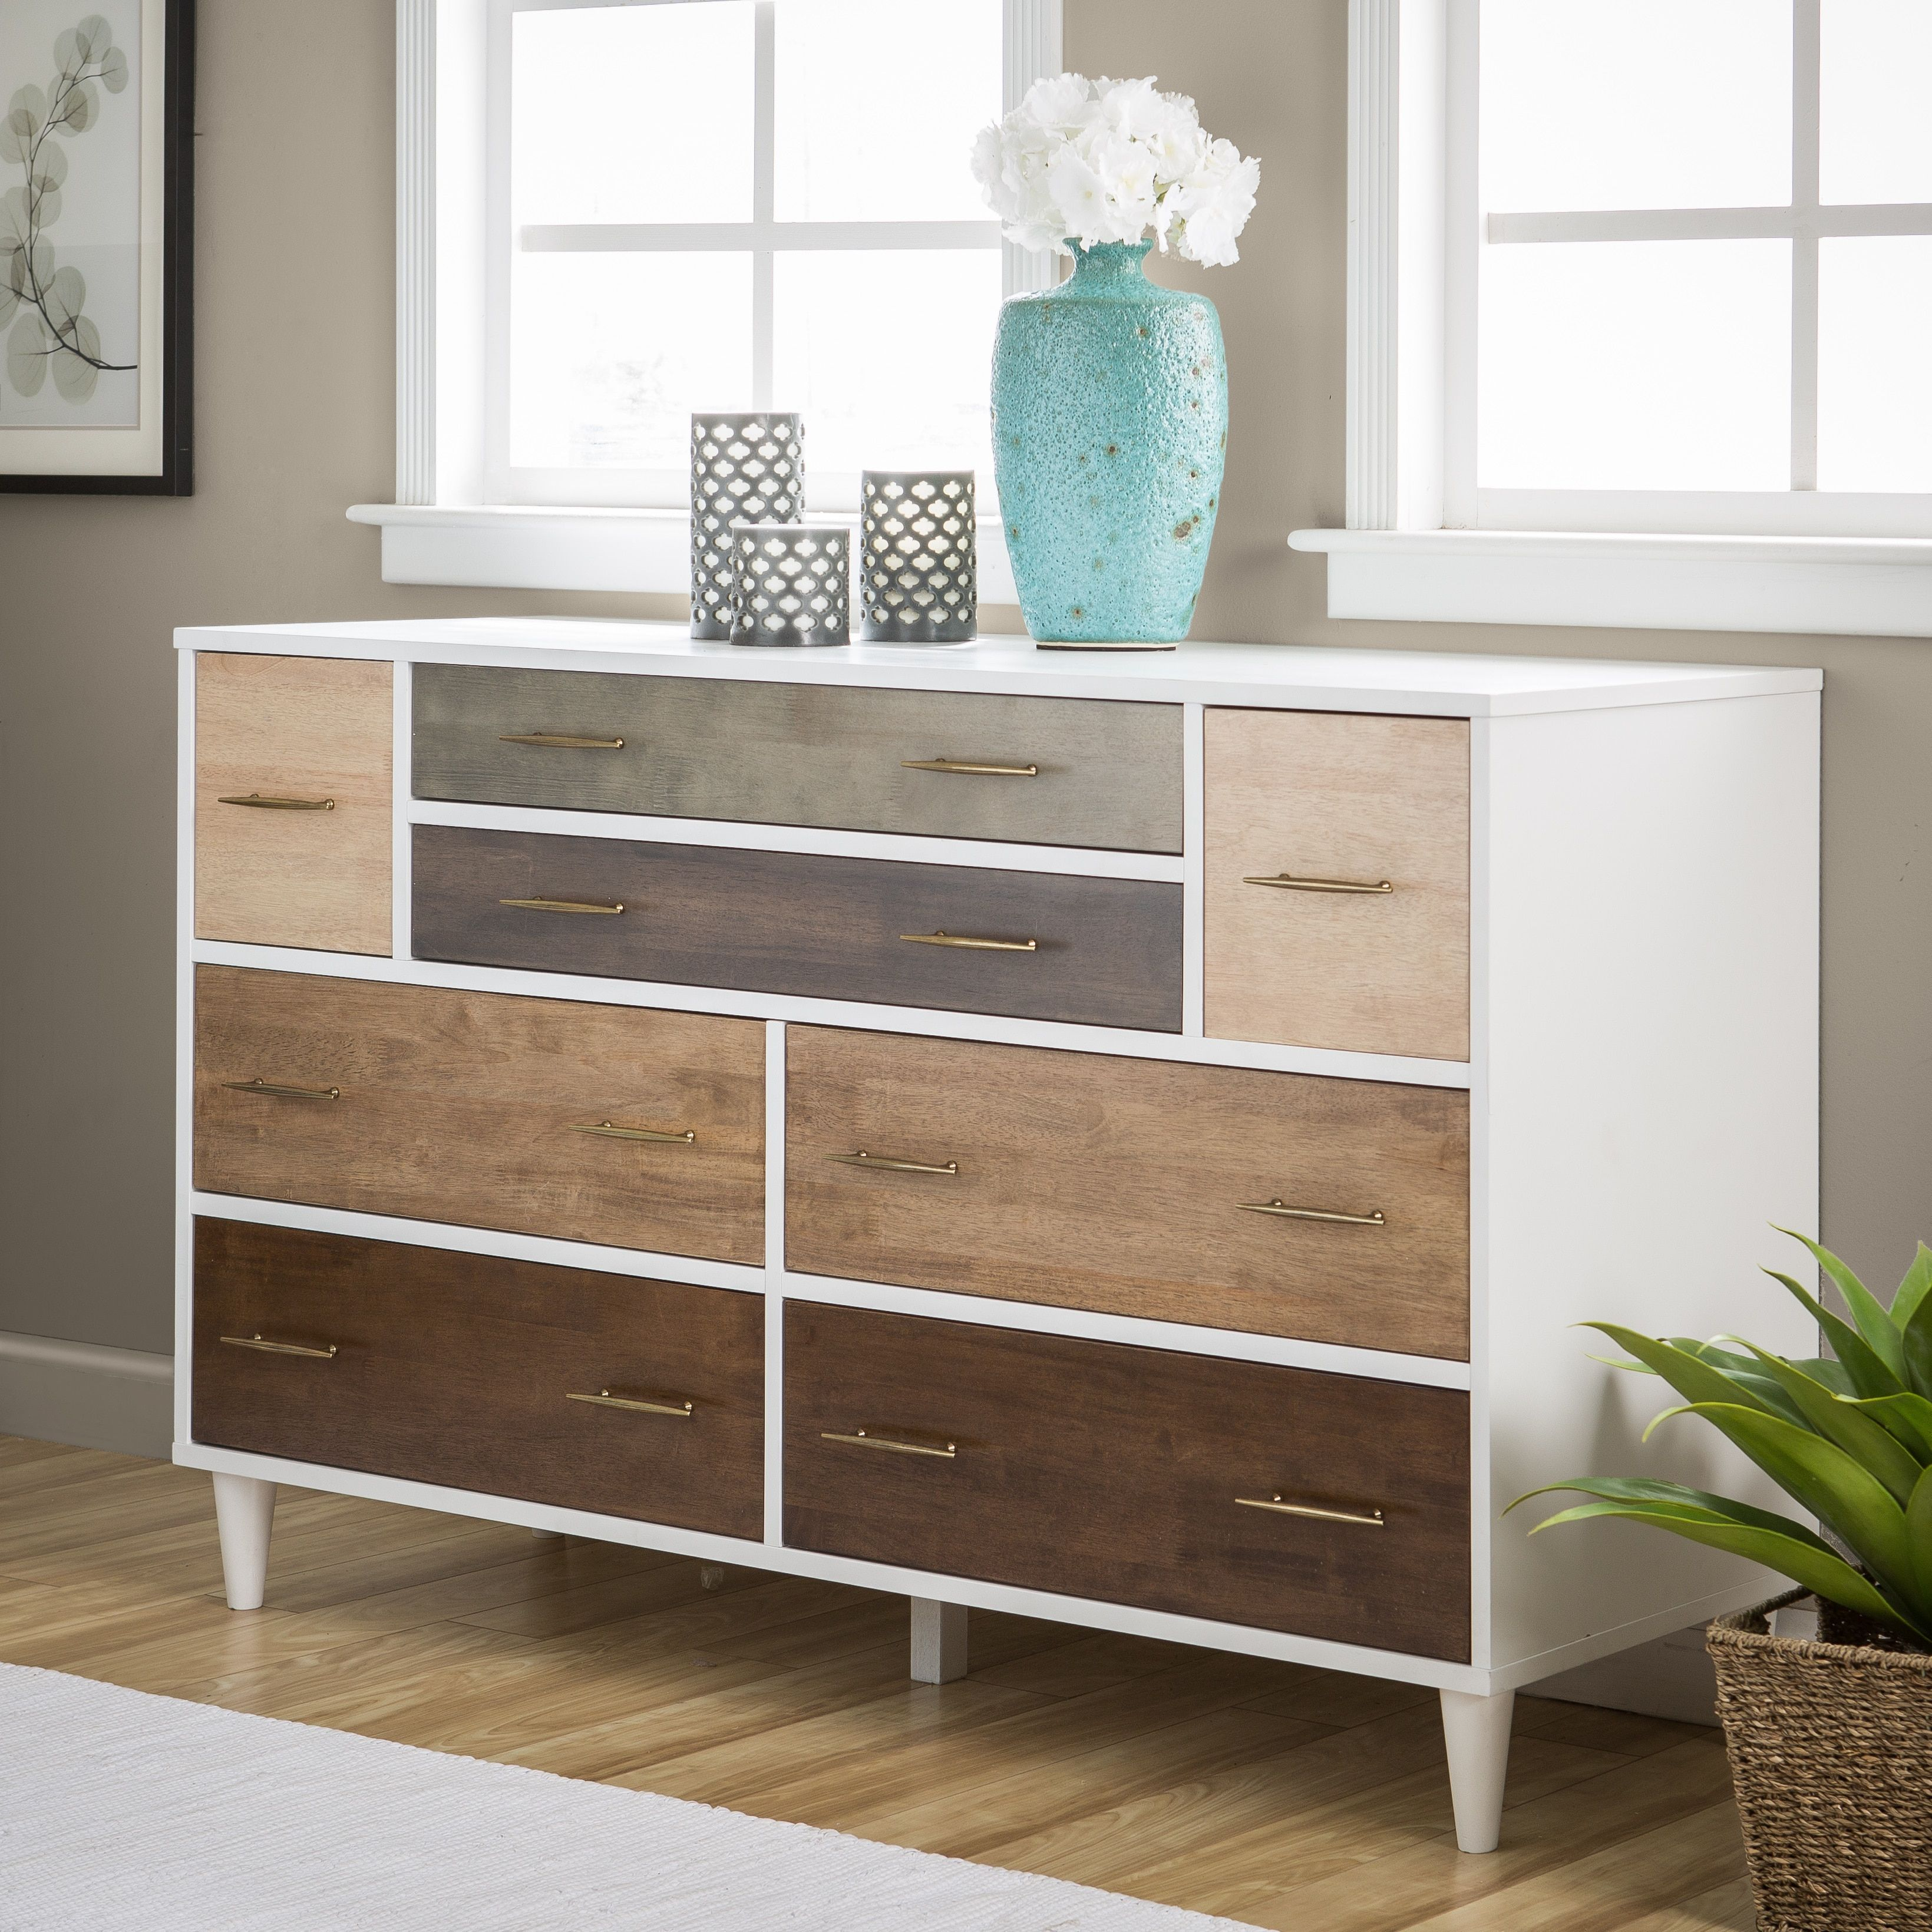 Shop our biggest ever memorial day sale dressers a wide variety